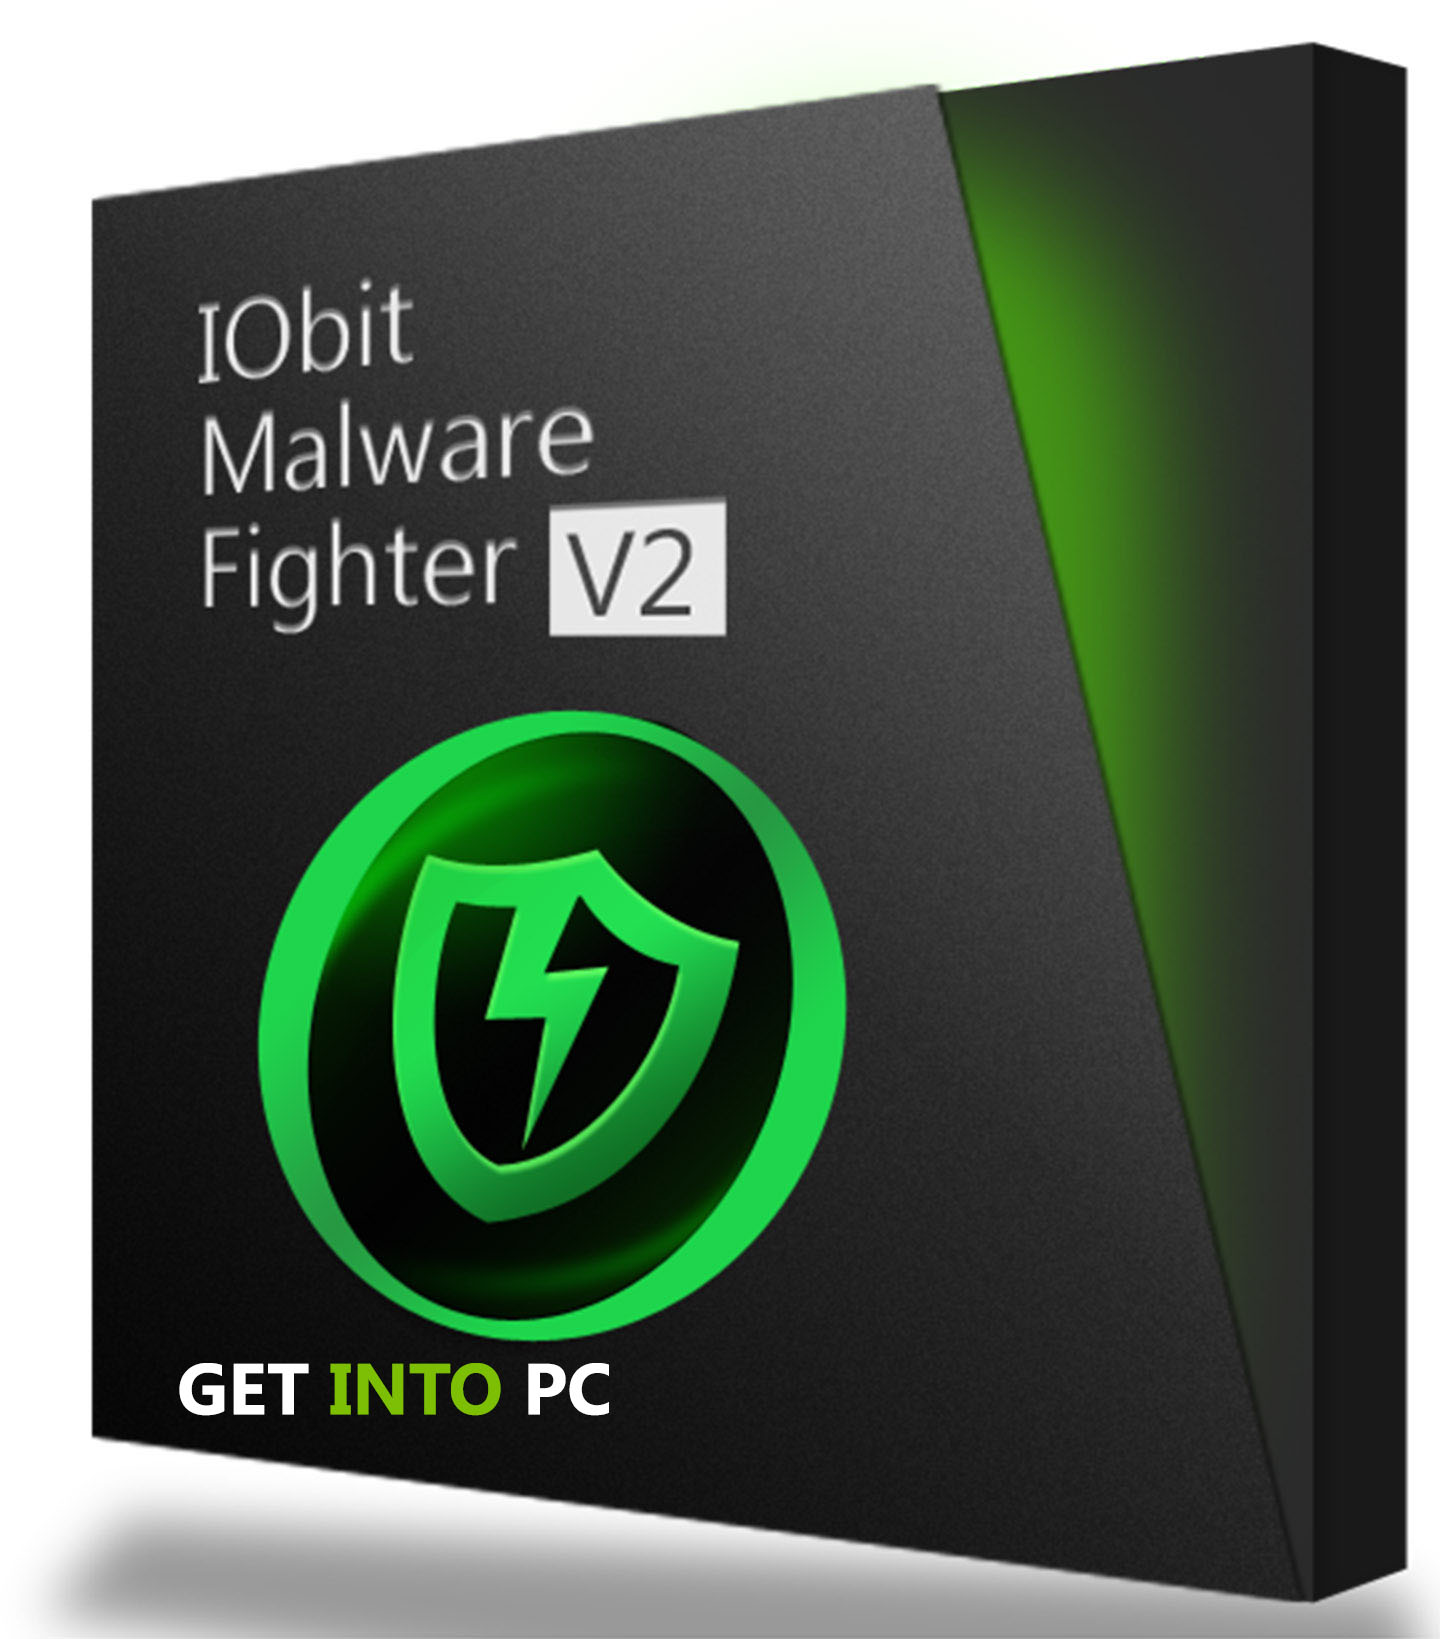 Iobit malware fighter pro 1.3 0.4 setup keygen